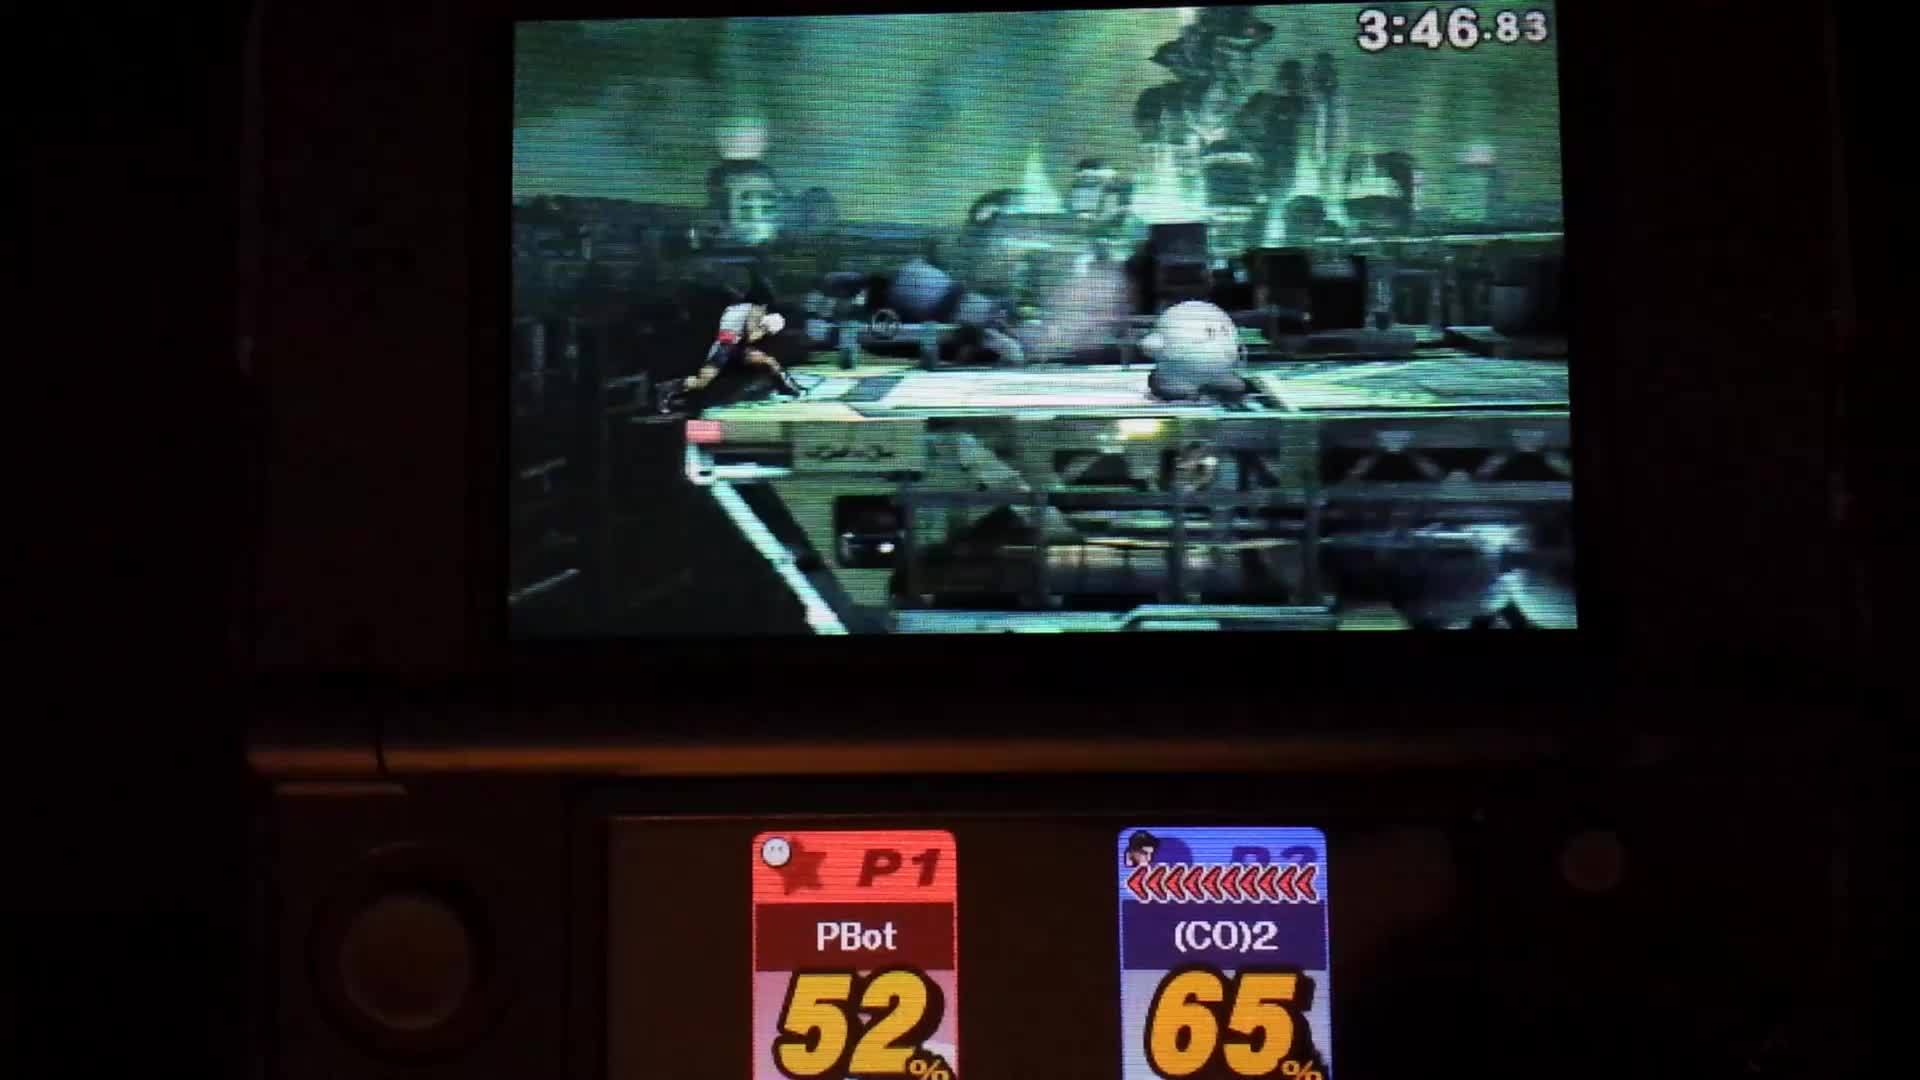 sm4sh, smashbros, What happened to Jolt Haymaker here? GIFs